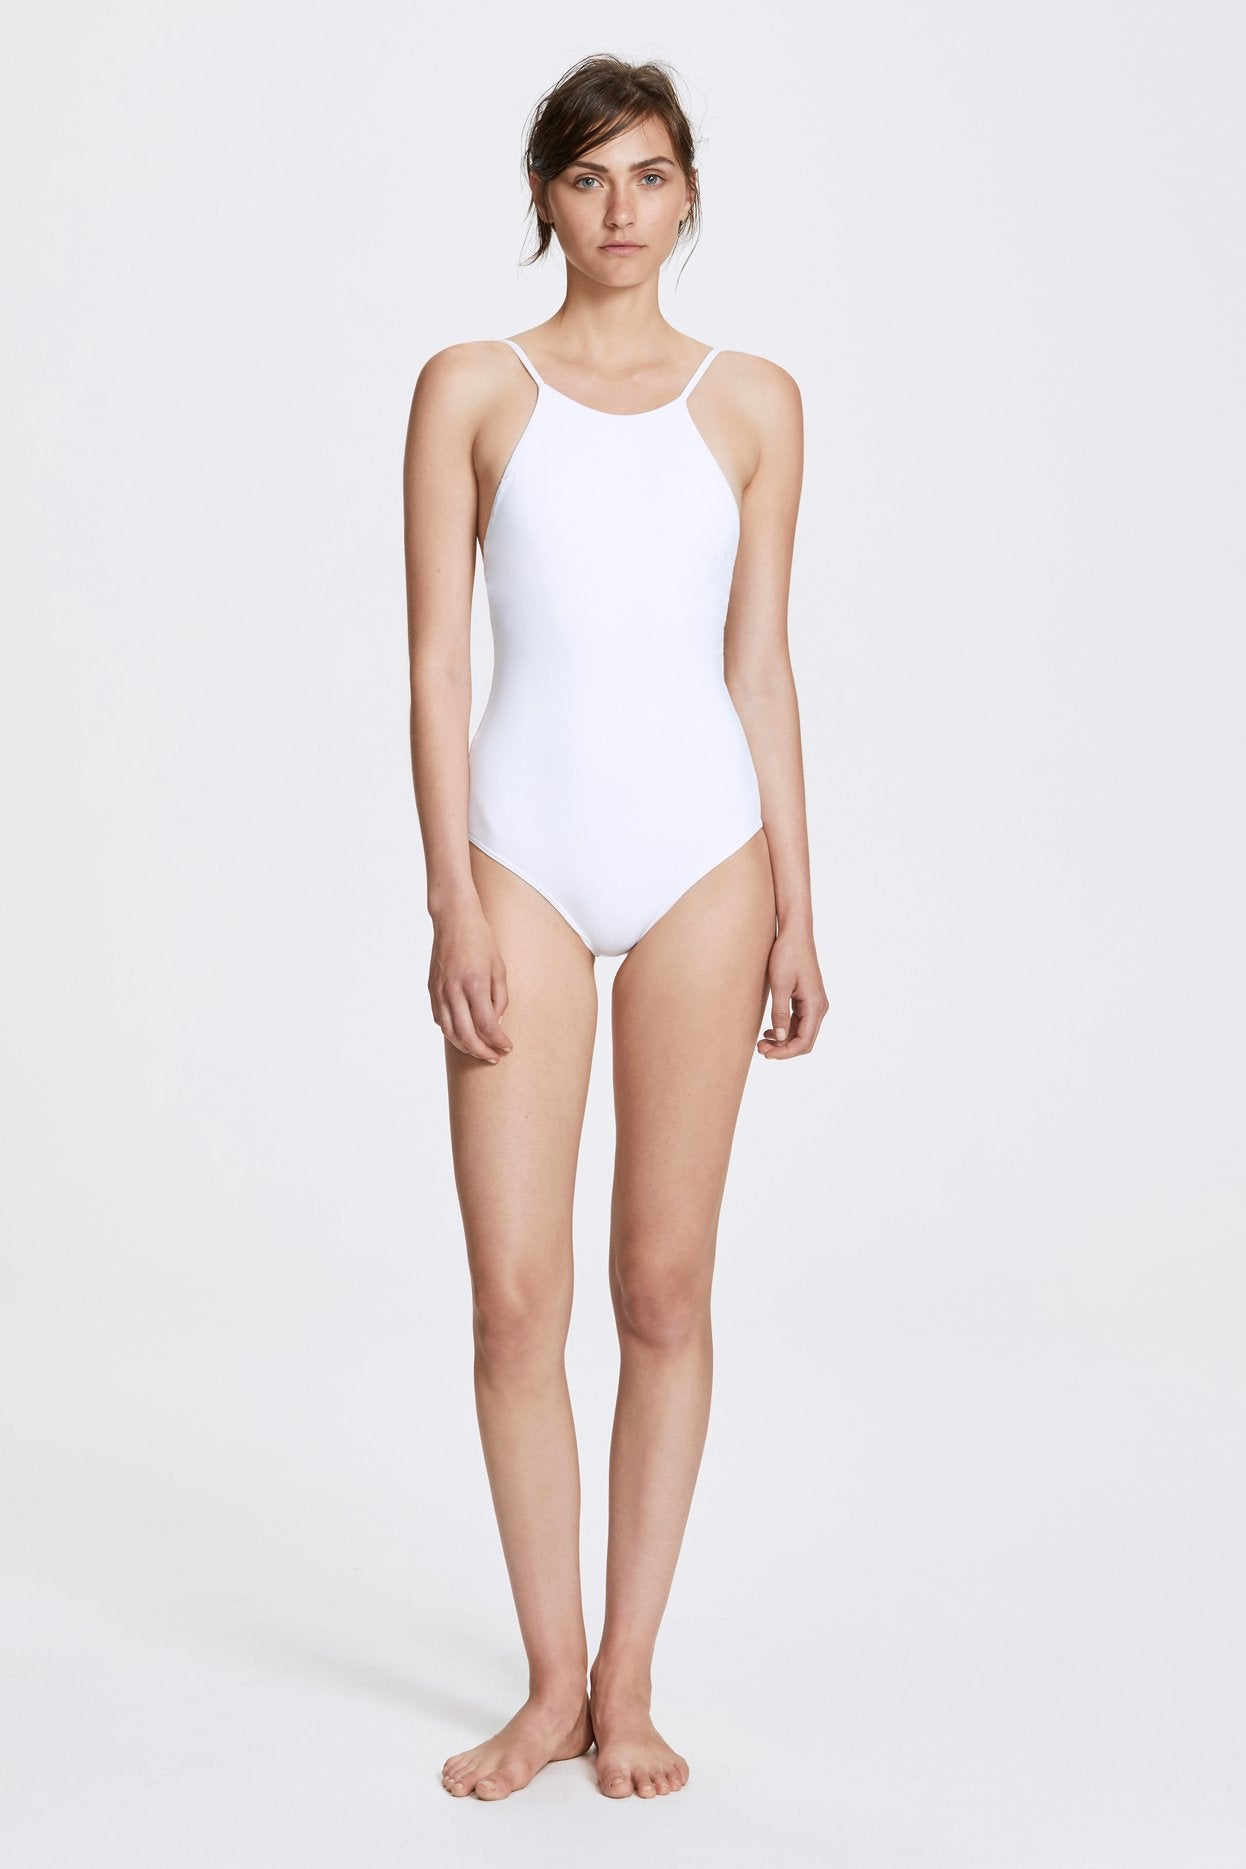 Her Line Jill Swimwear One Piece Milk White Front